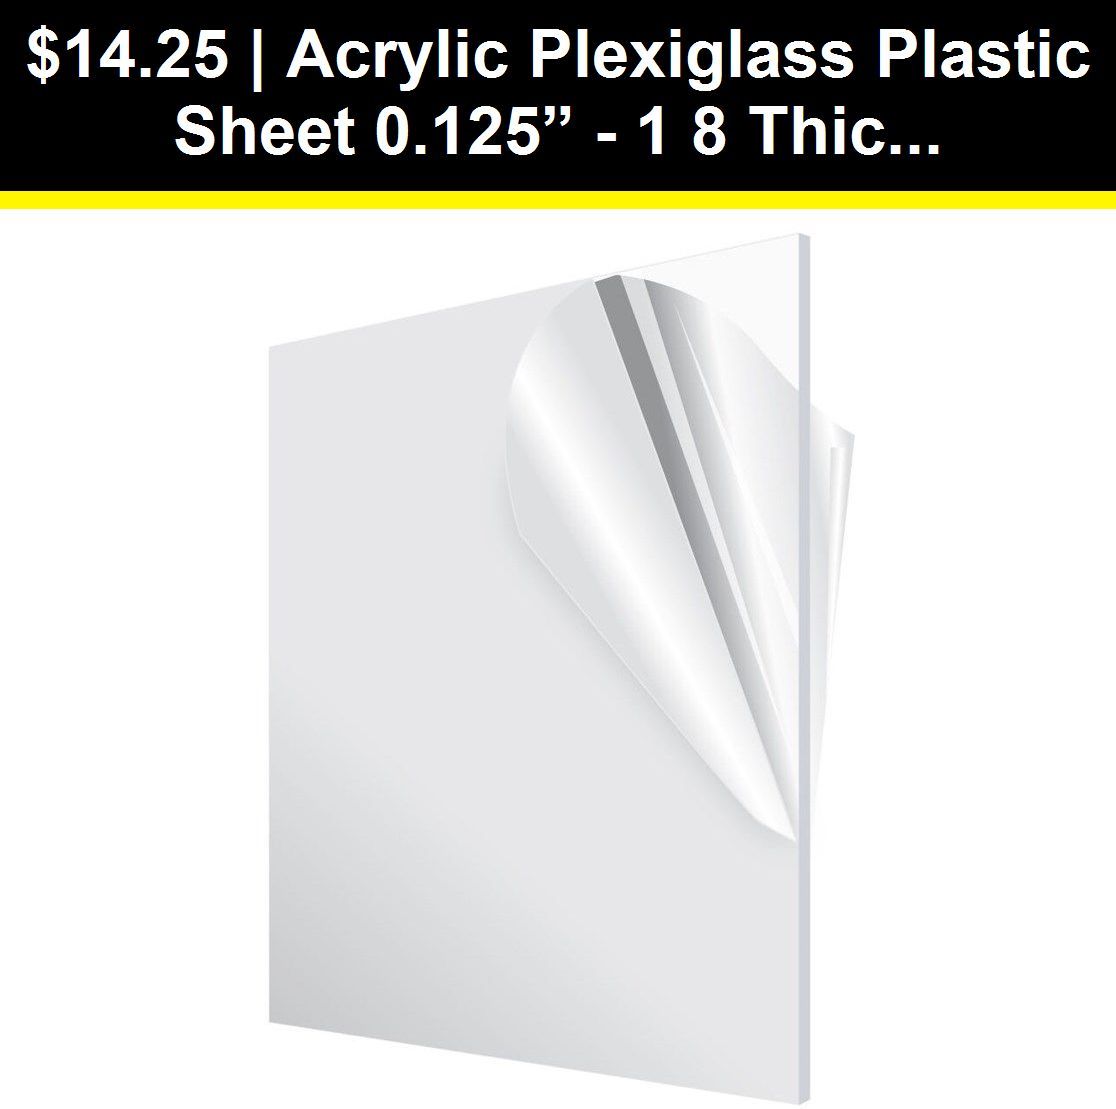 Acrylic Plexiglass Plastic Sheet 0 125 1 8 Thick You Pick The Size Clear Ebay Plastic Sheets Plexiglass Sheet